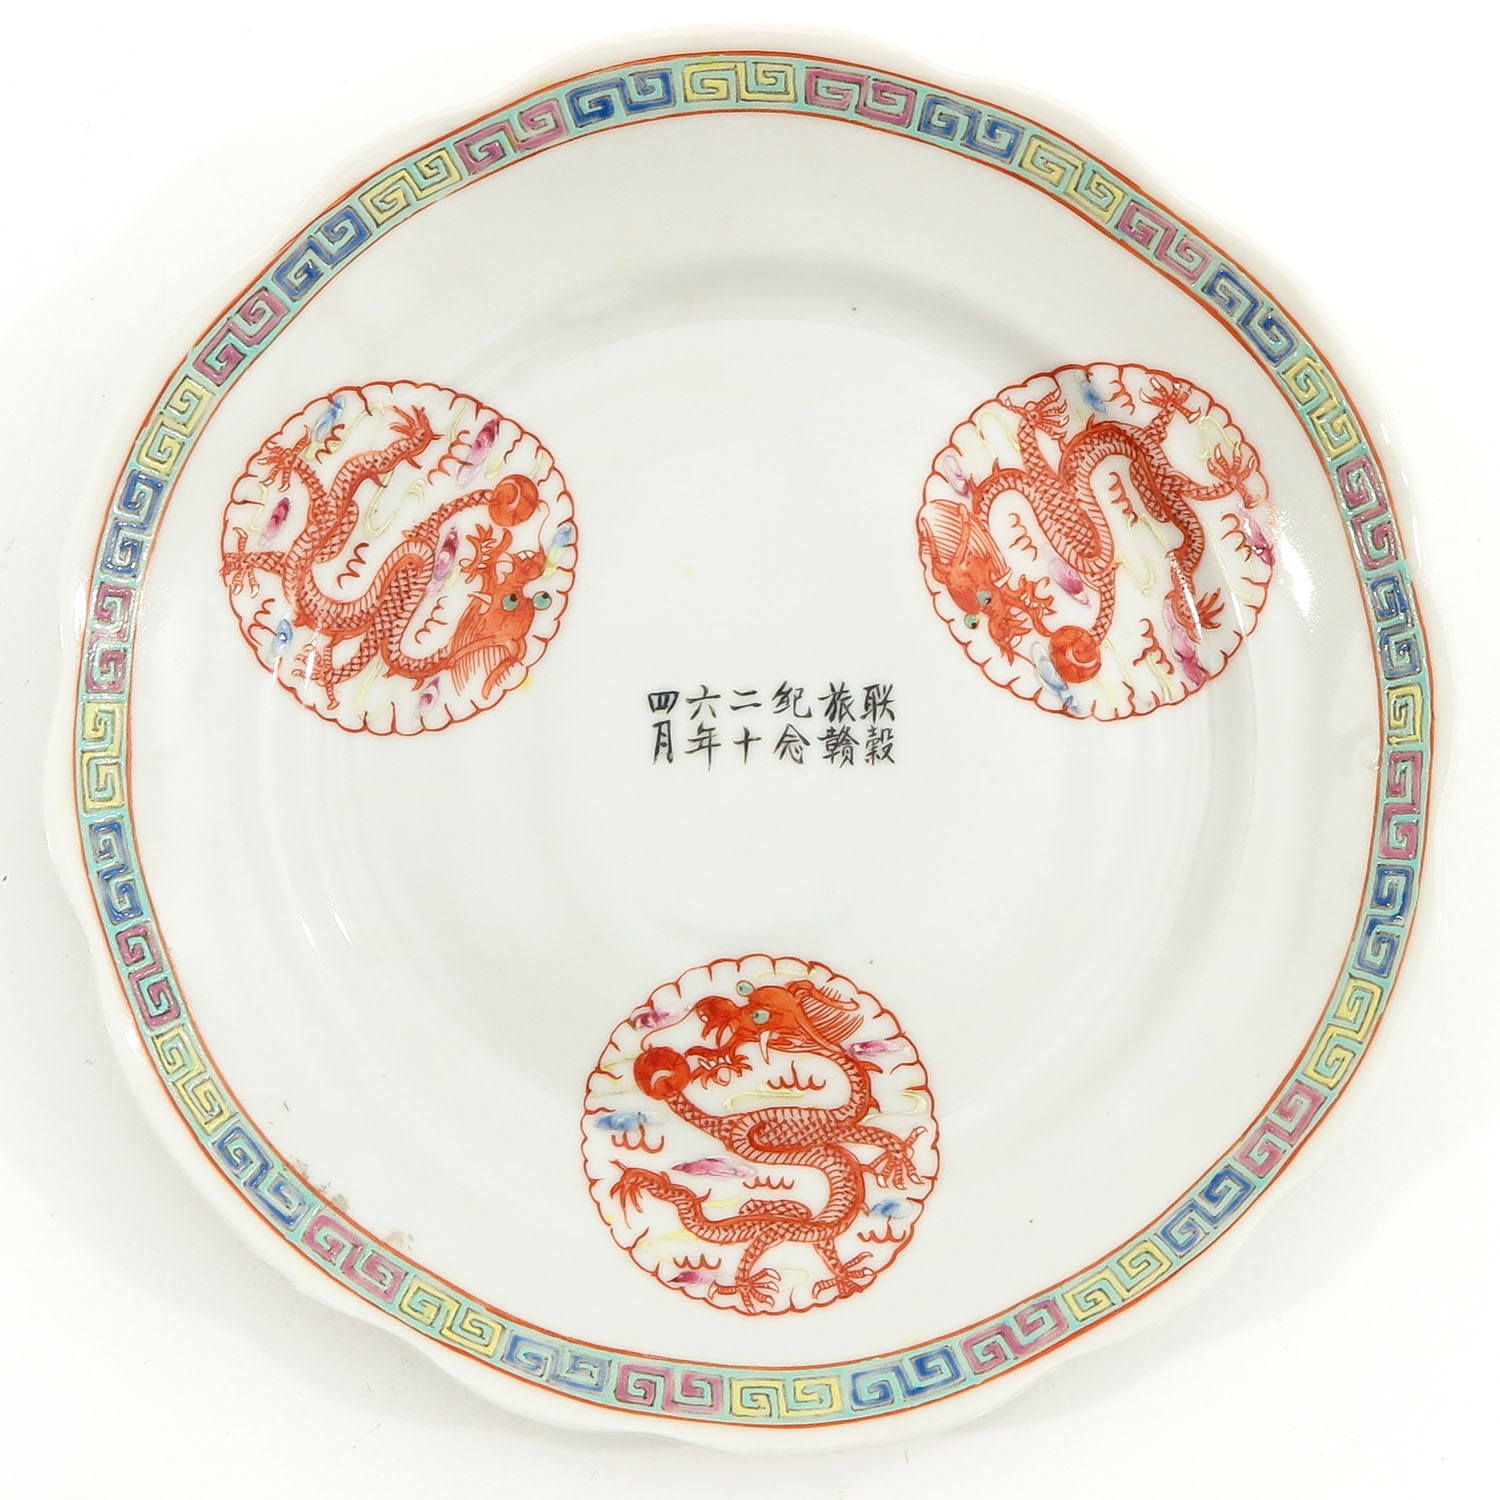 A Collection of 3 Plates - Image 7 of 10